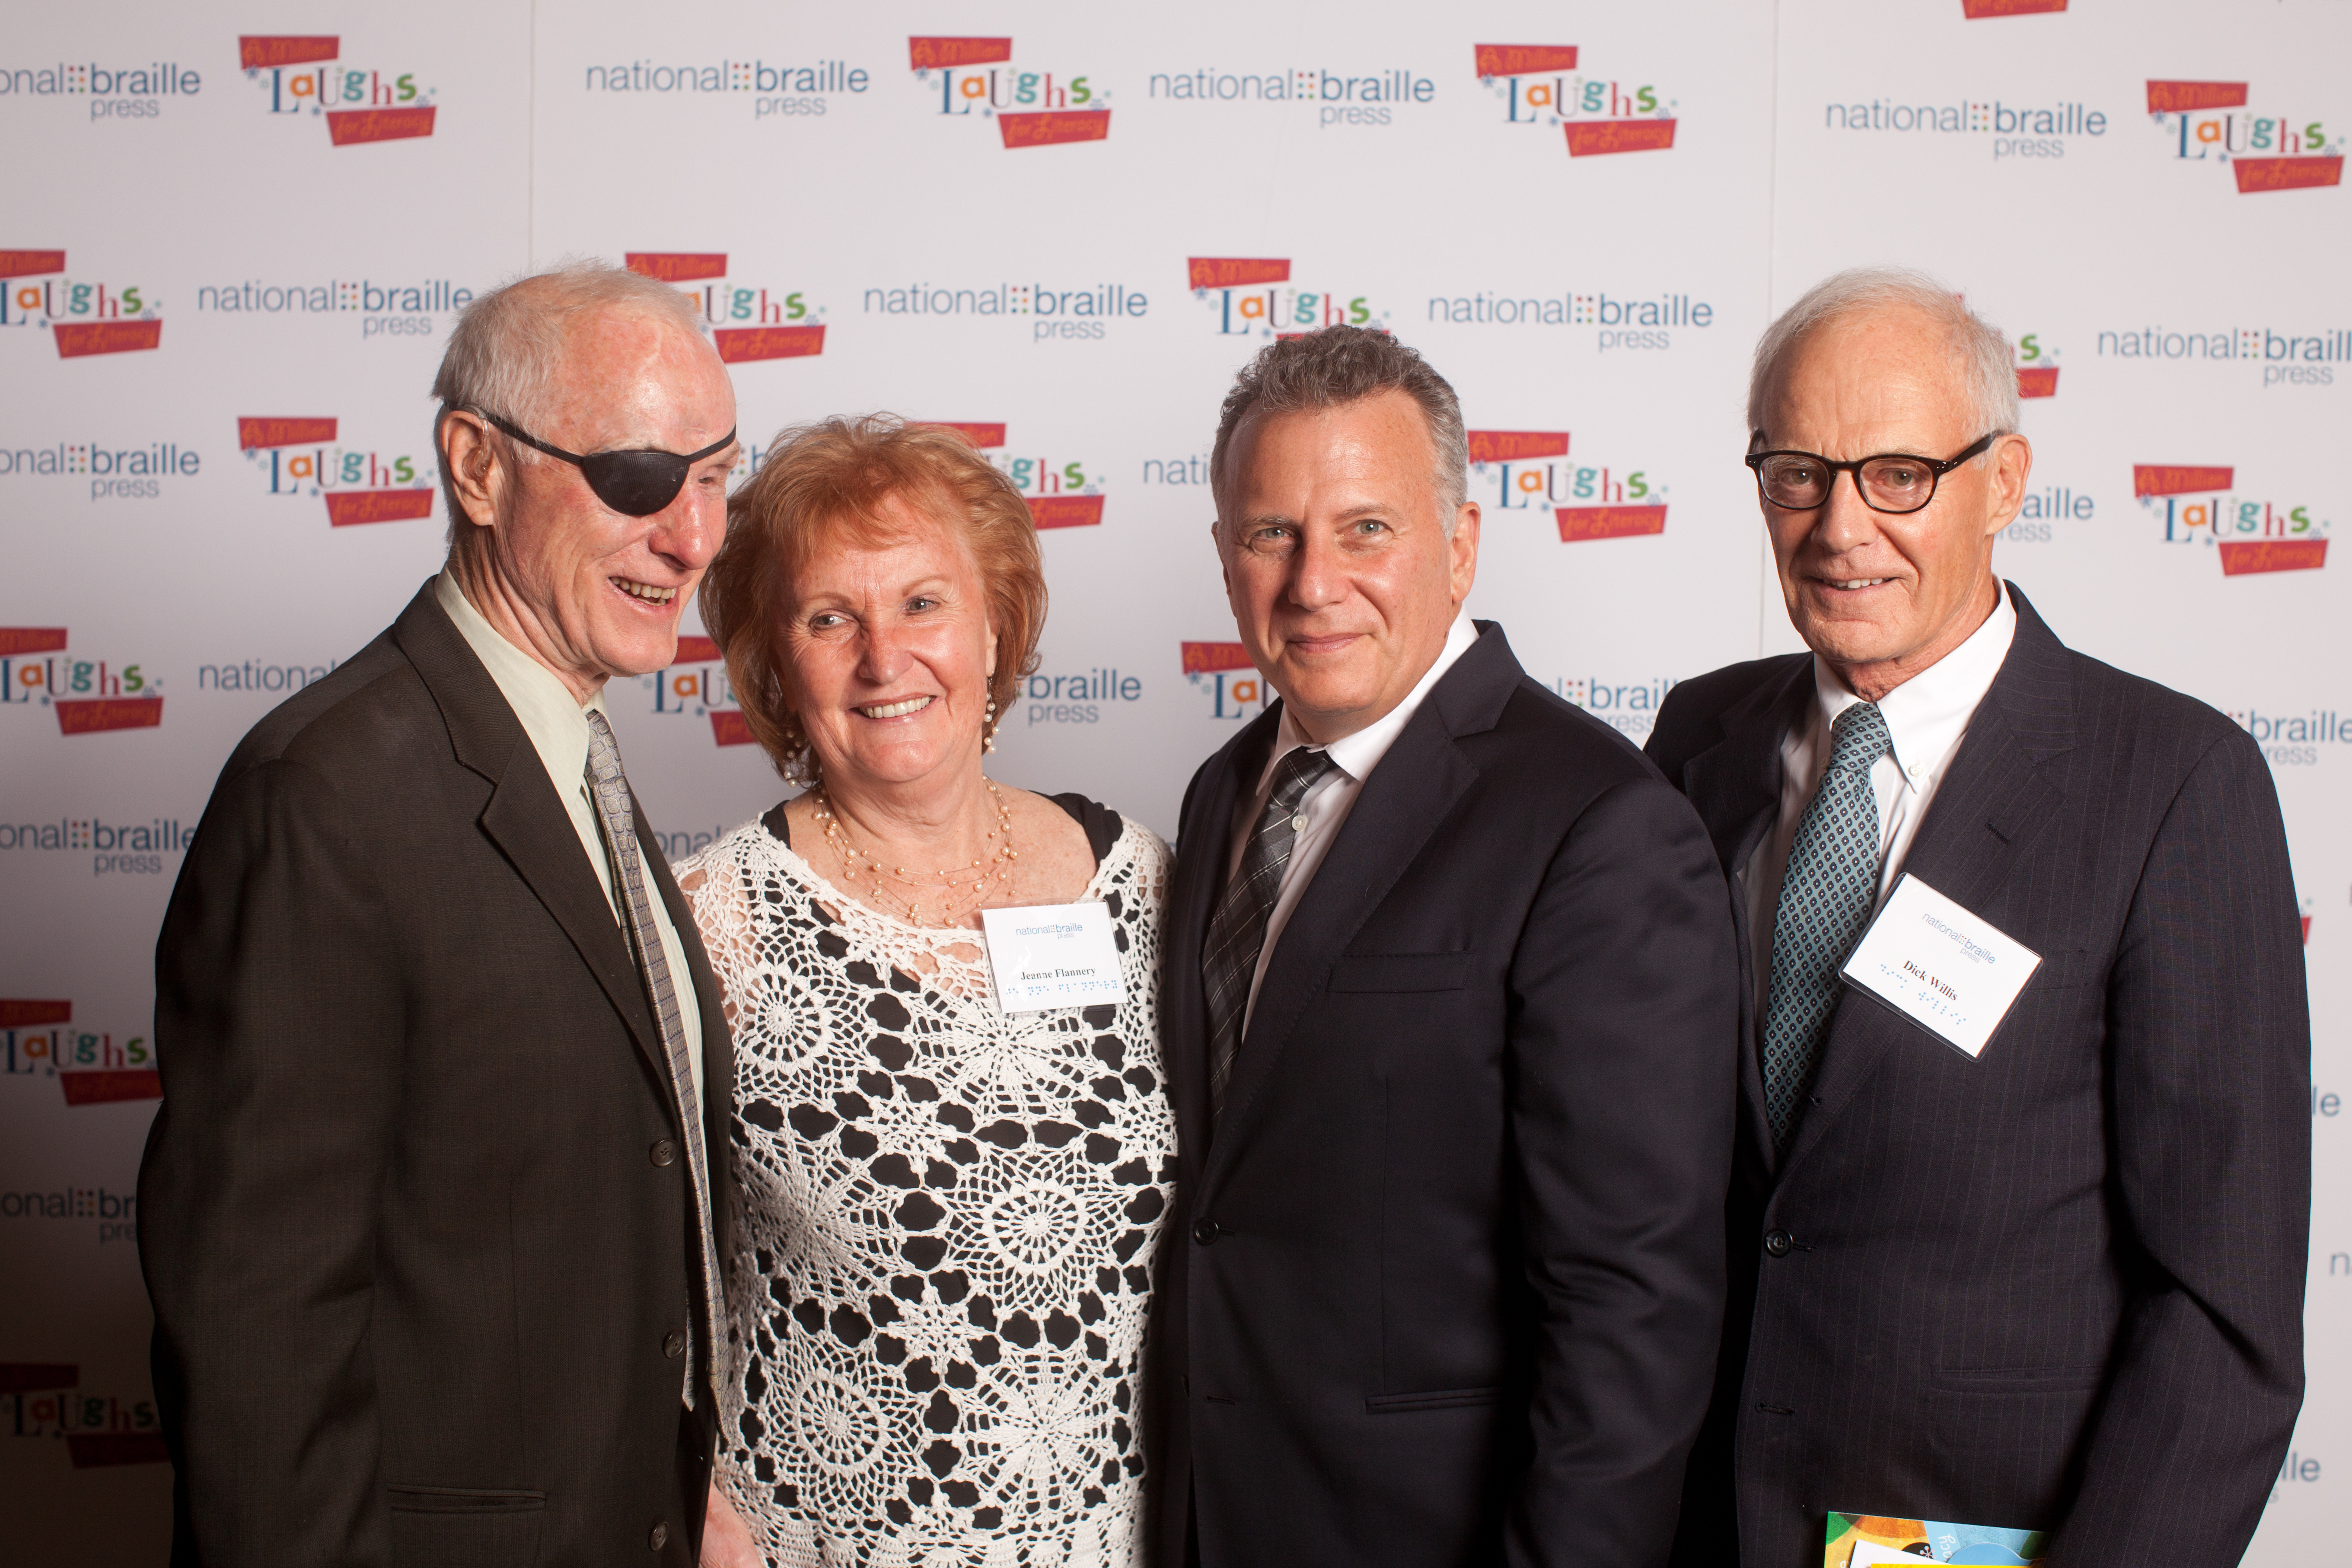 Bill Raeder, Jeanne Flanery, and comedian, Paul Reiser, withDick Willis at the 2013 A Million Laughs for Literacy Gala